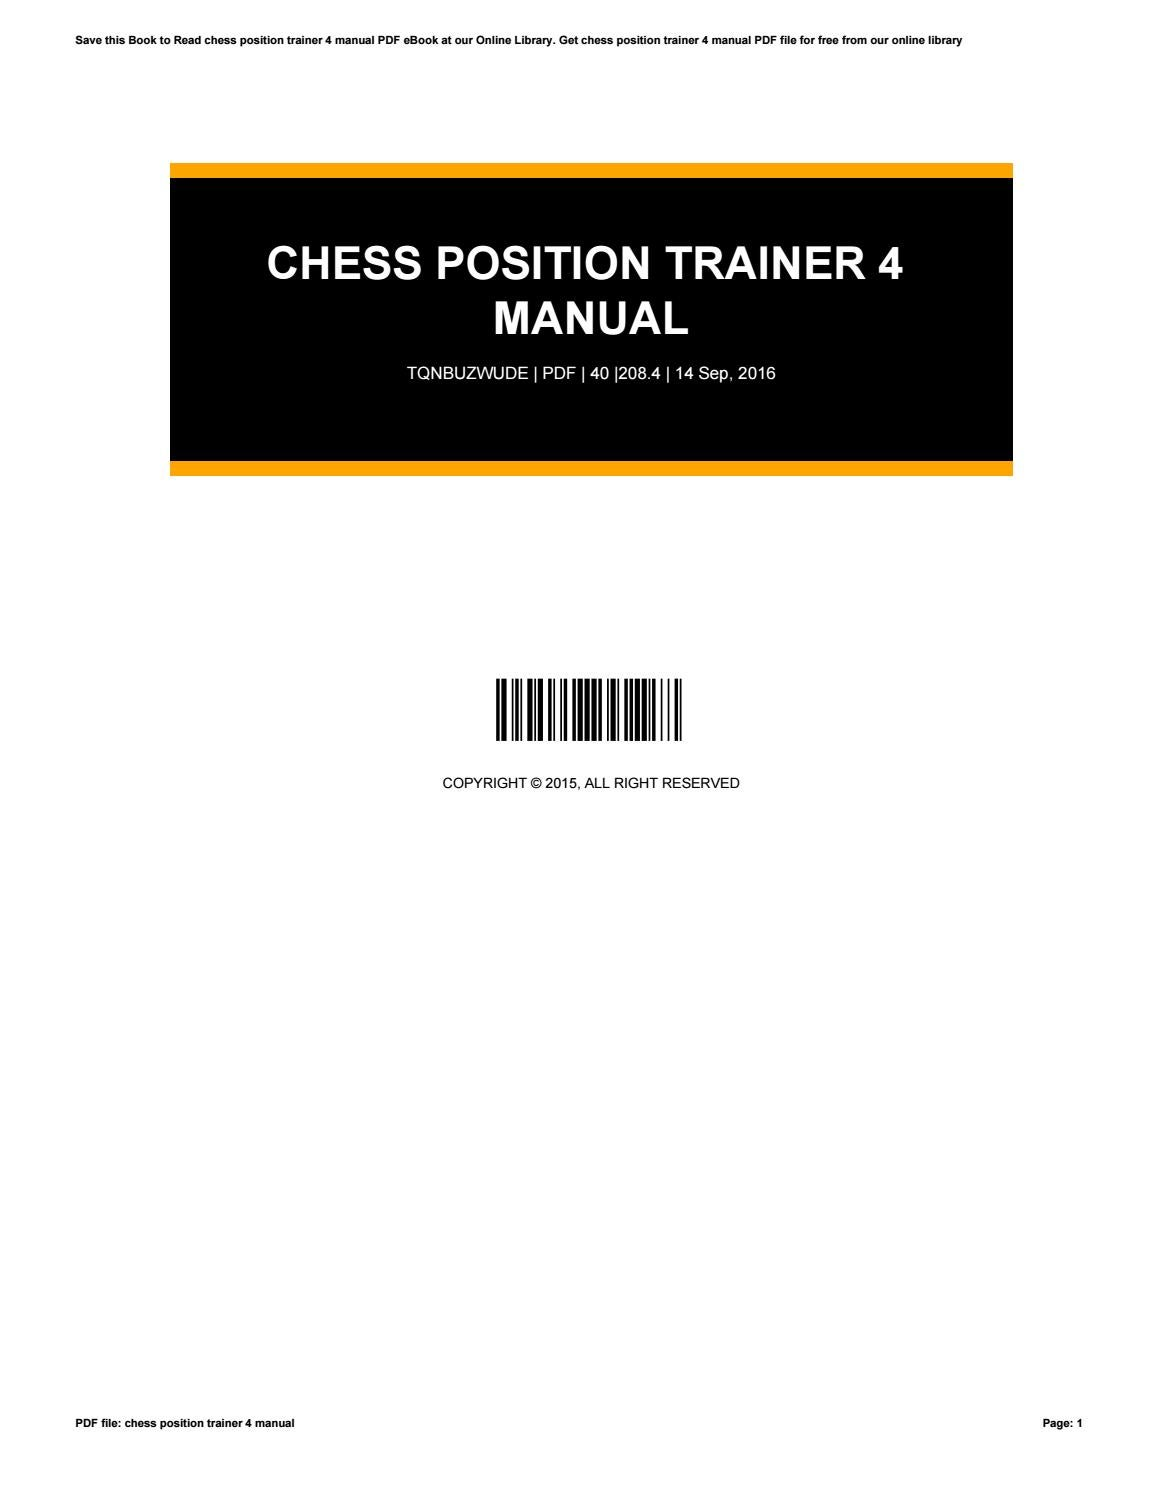 Manual of chess combinations volume 1b pdf free download.